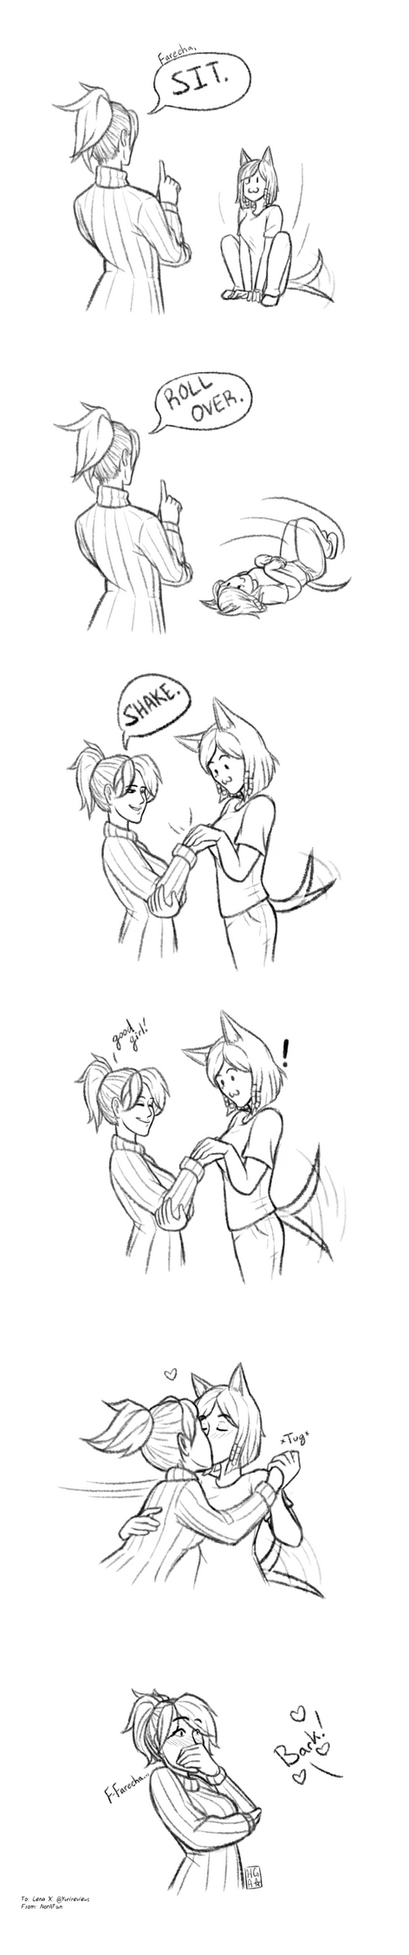 Pharmercy - How to Train Your Pharah by Hot-Gothics